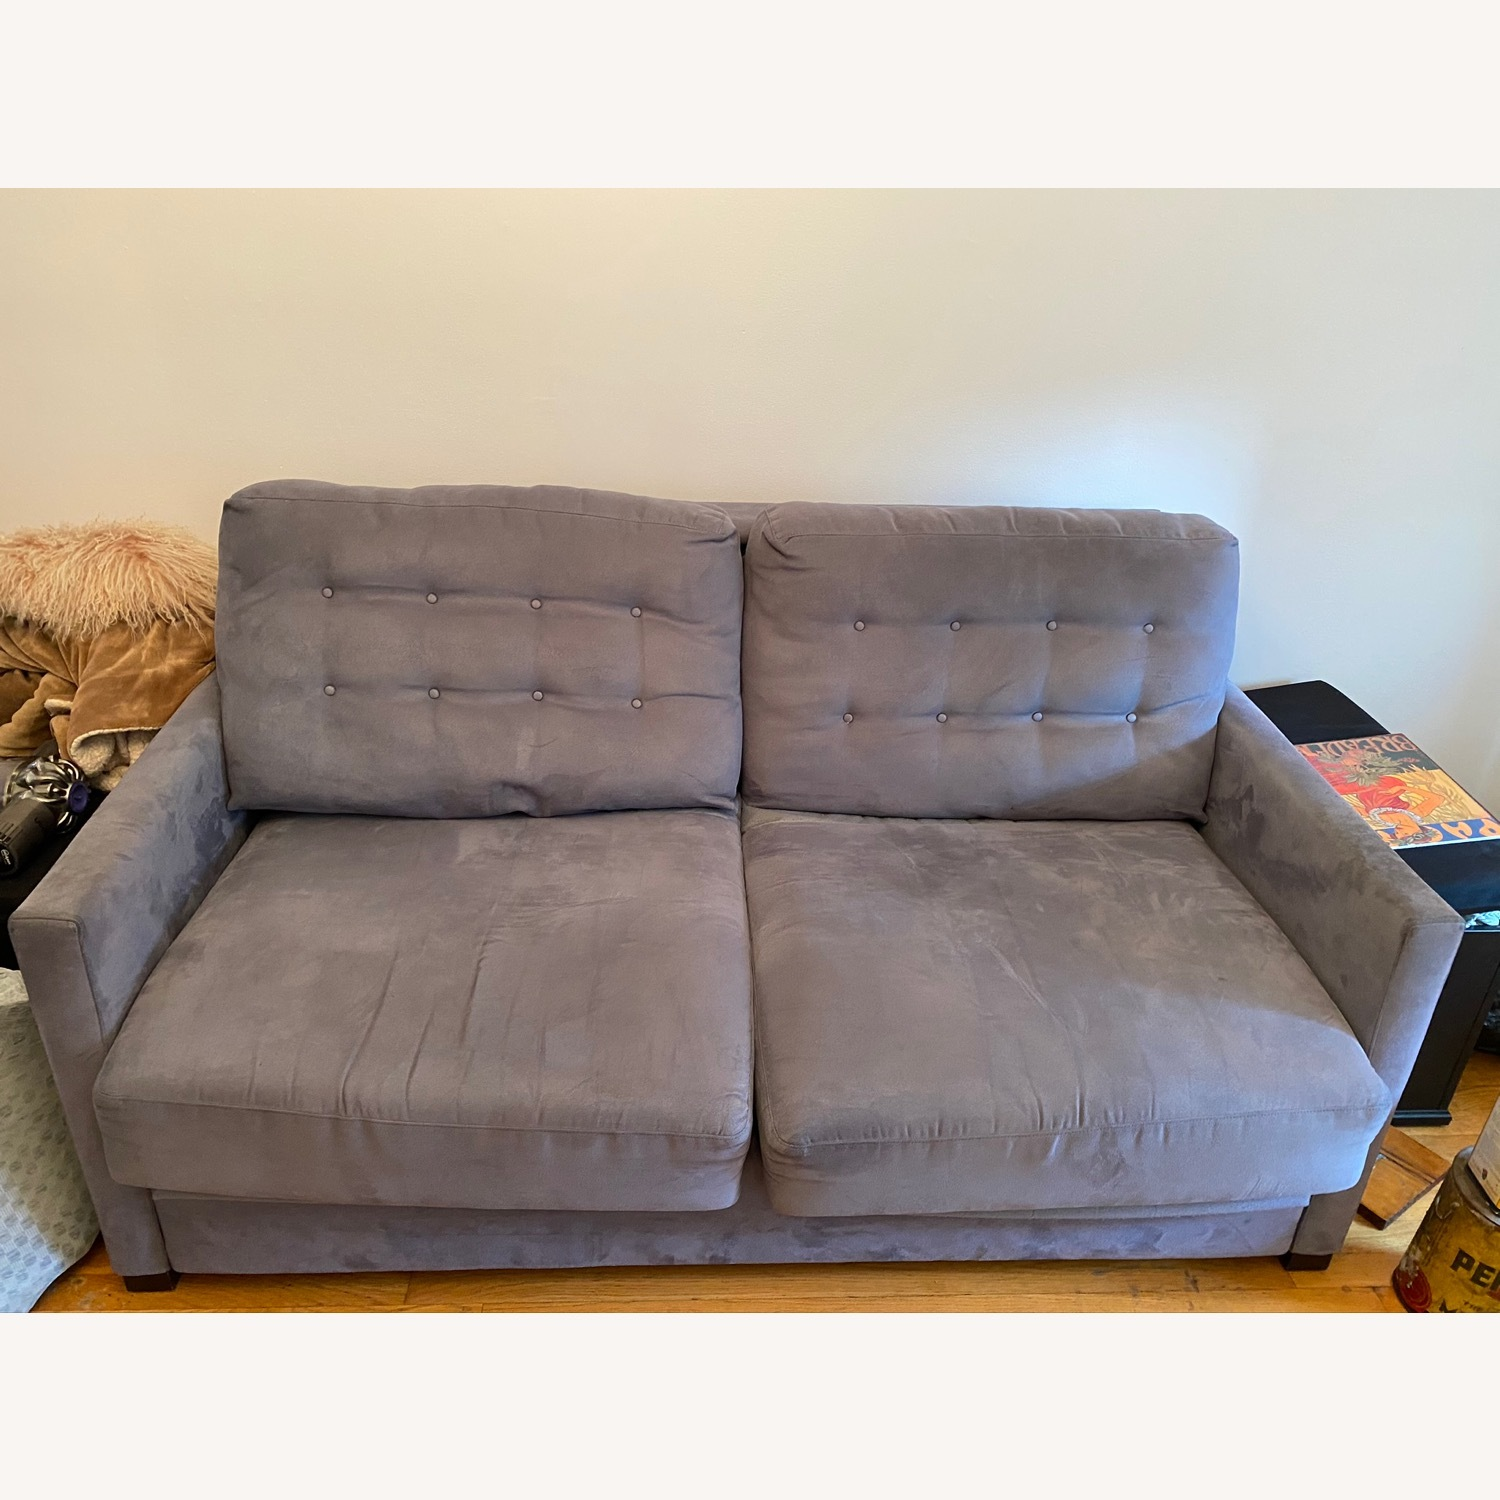 Raymour & Flanigan Pull-Out Memory Foam Sofa - image-2